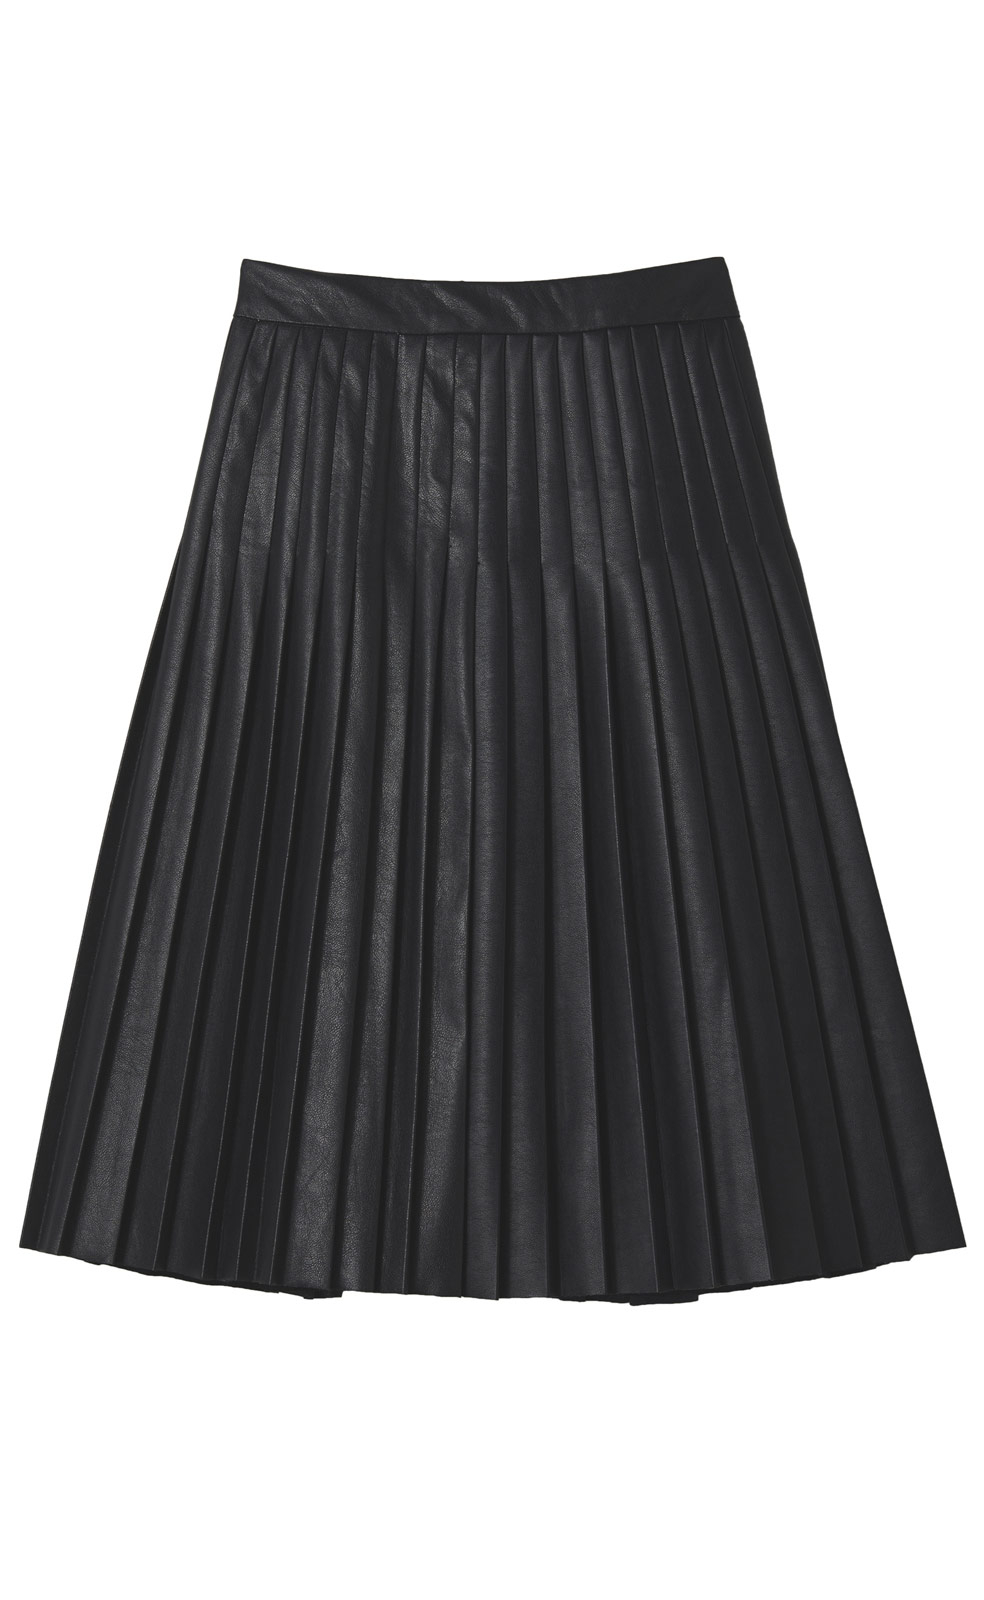 Rebecca taylor Faux Leather Pleated Skirt in Black | Lyst